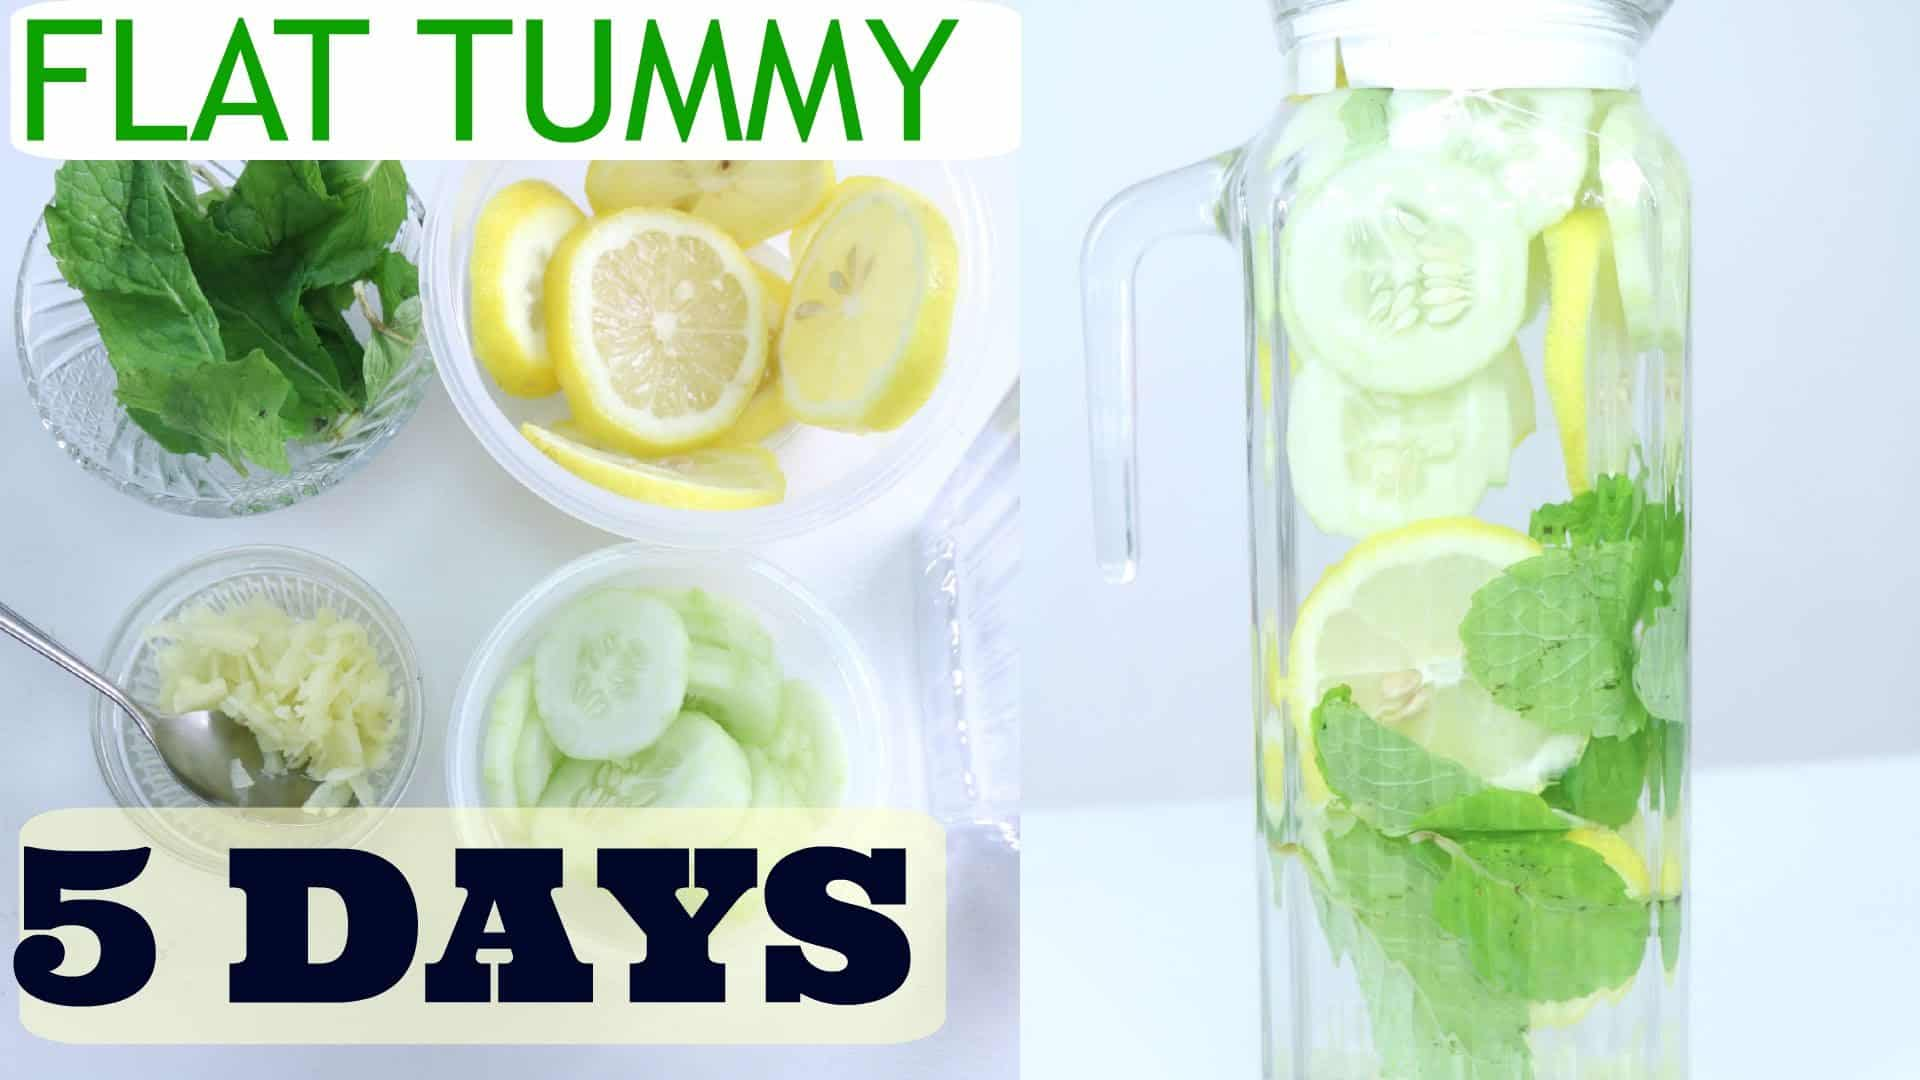 Lose Weight in 5 Days with this Magic Drink